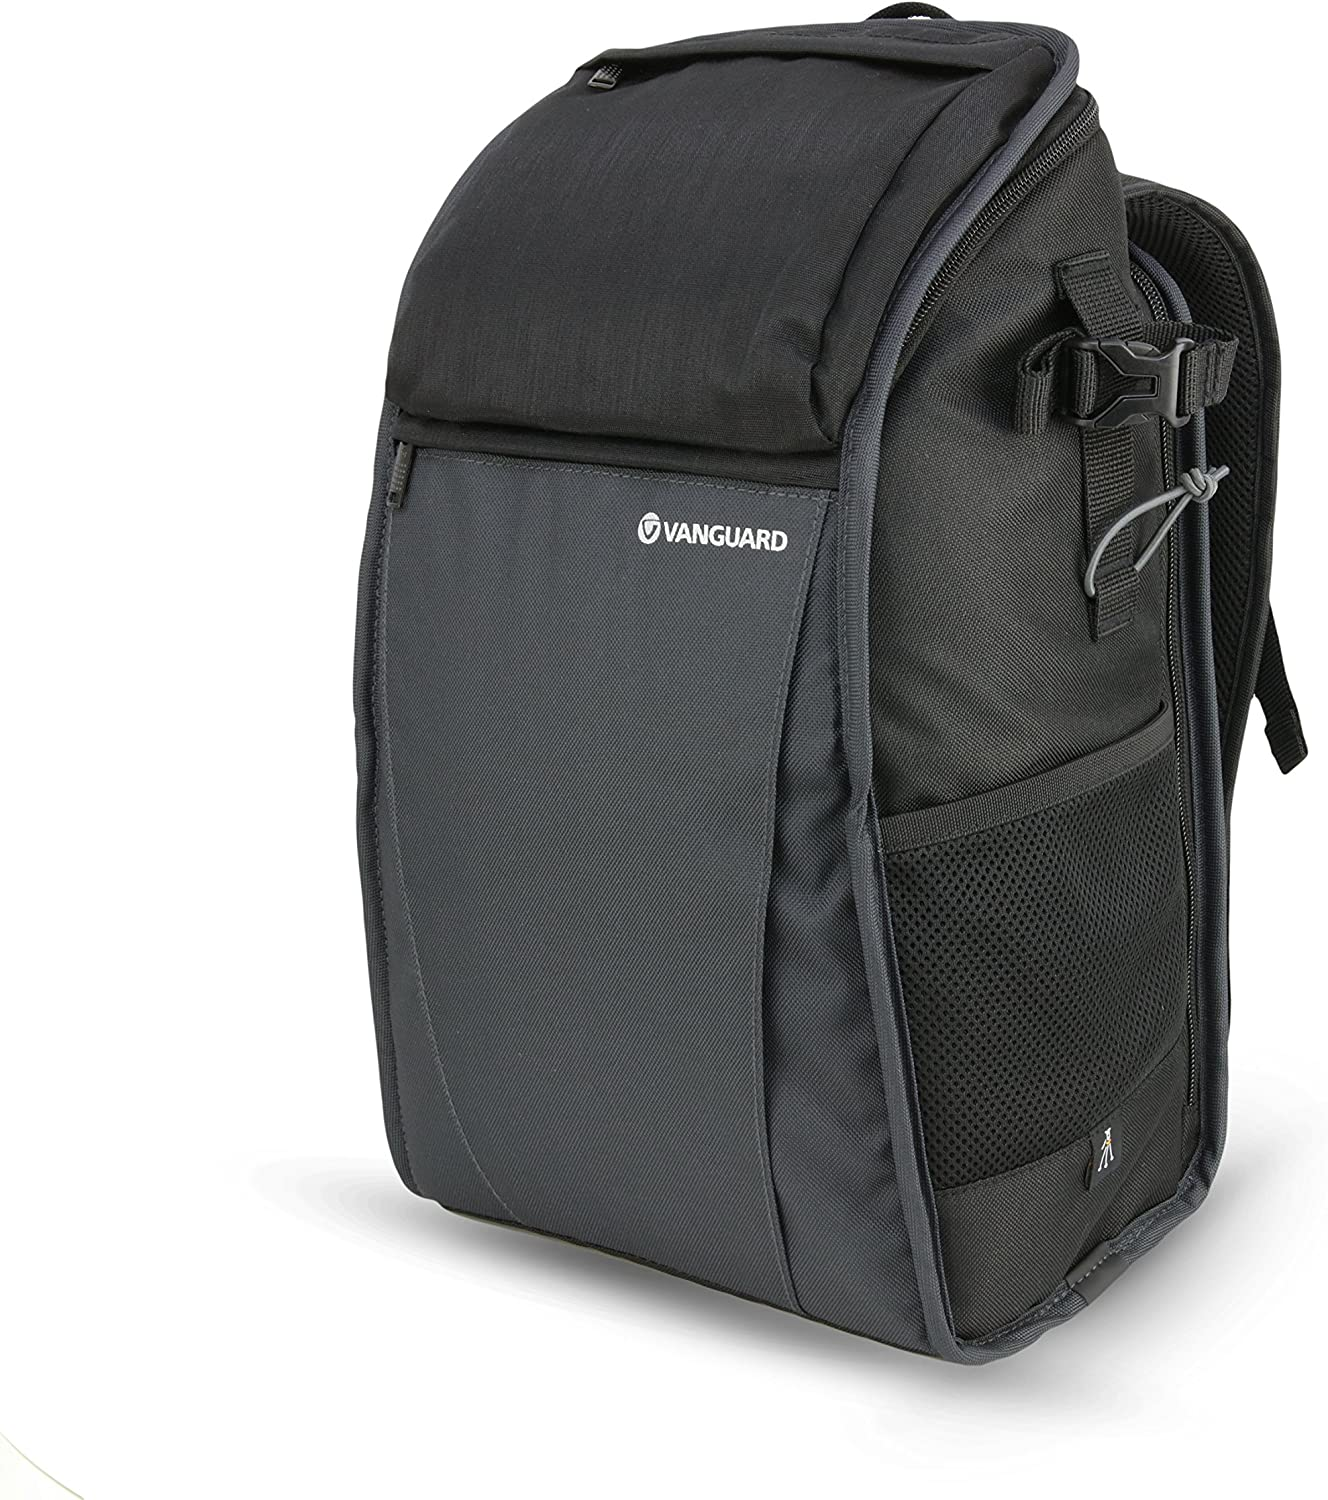 Black//Anthracite Vanguard Vesta Start 14Z Compact Bag in Nylon//Polyester